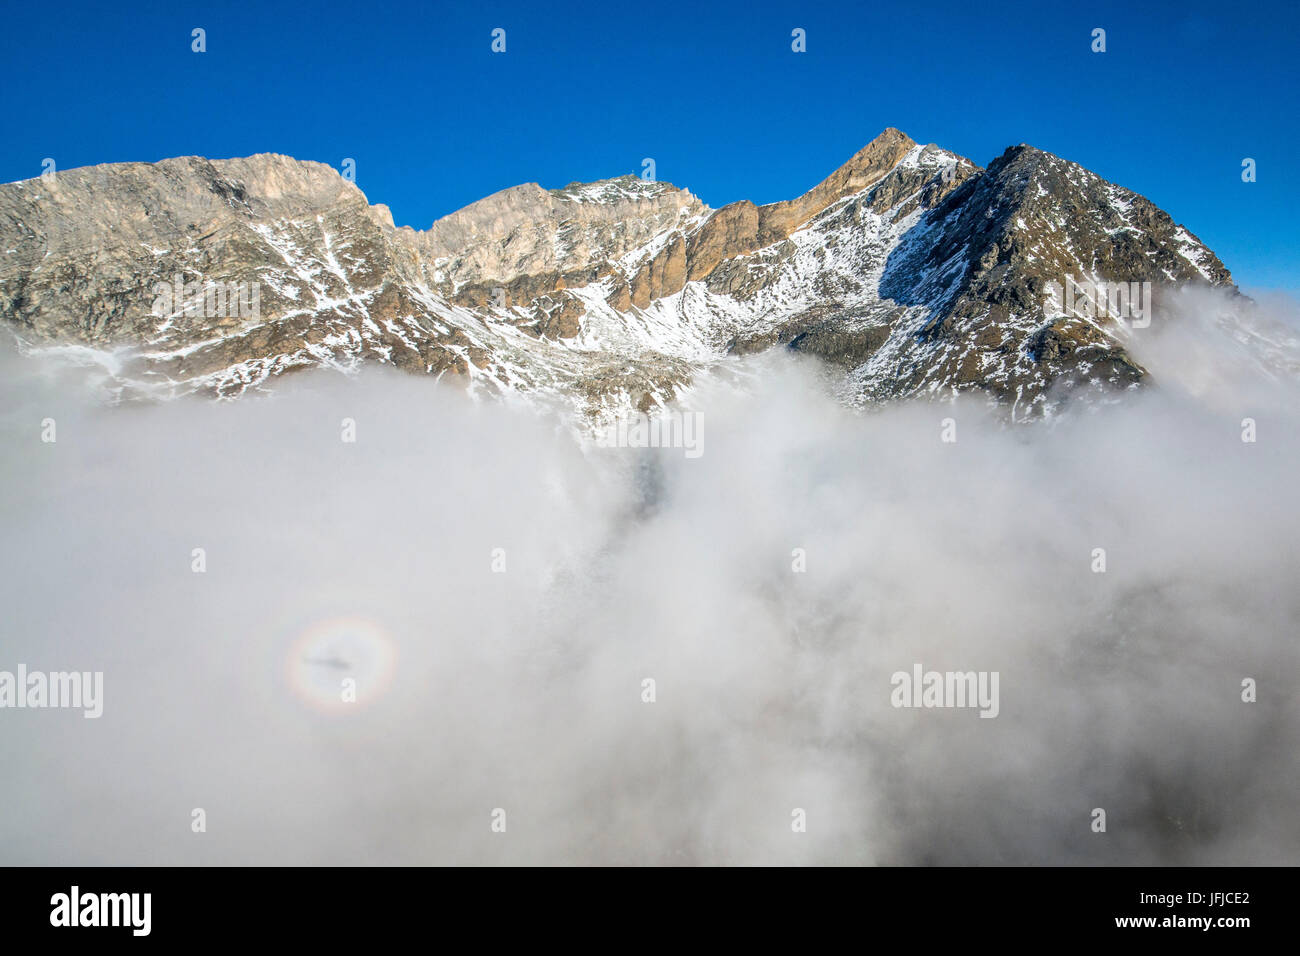 The humidity of clouds and the shadow of helicopter create Brocken spectre in Switzerland, Zermatt, Europe - Stock Image